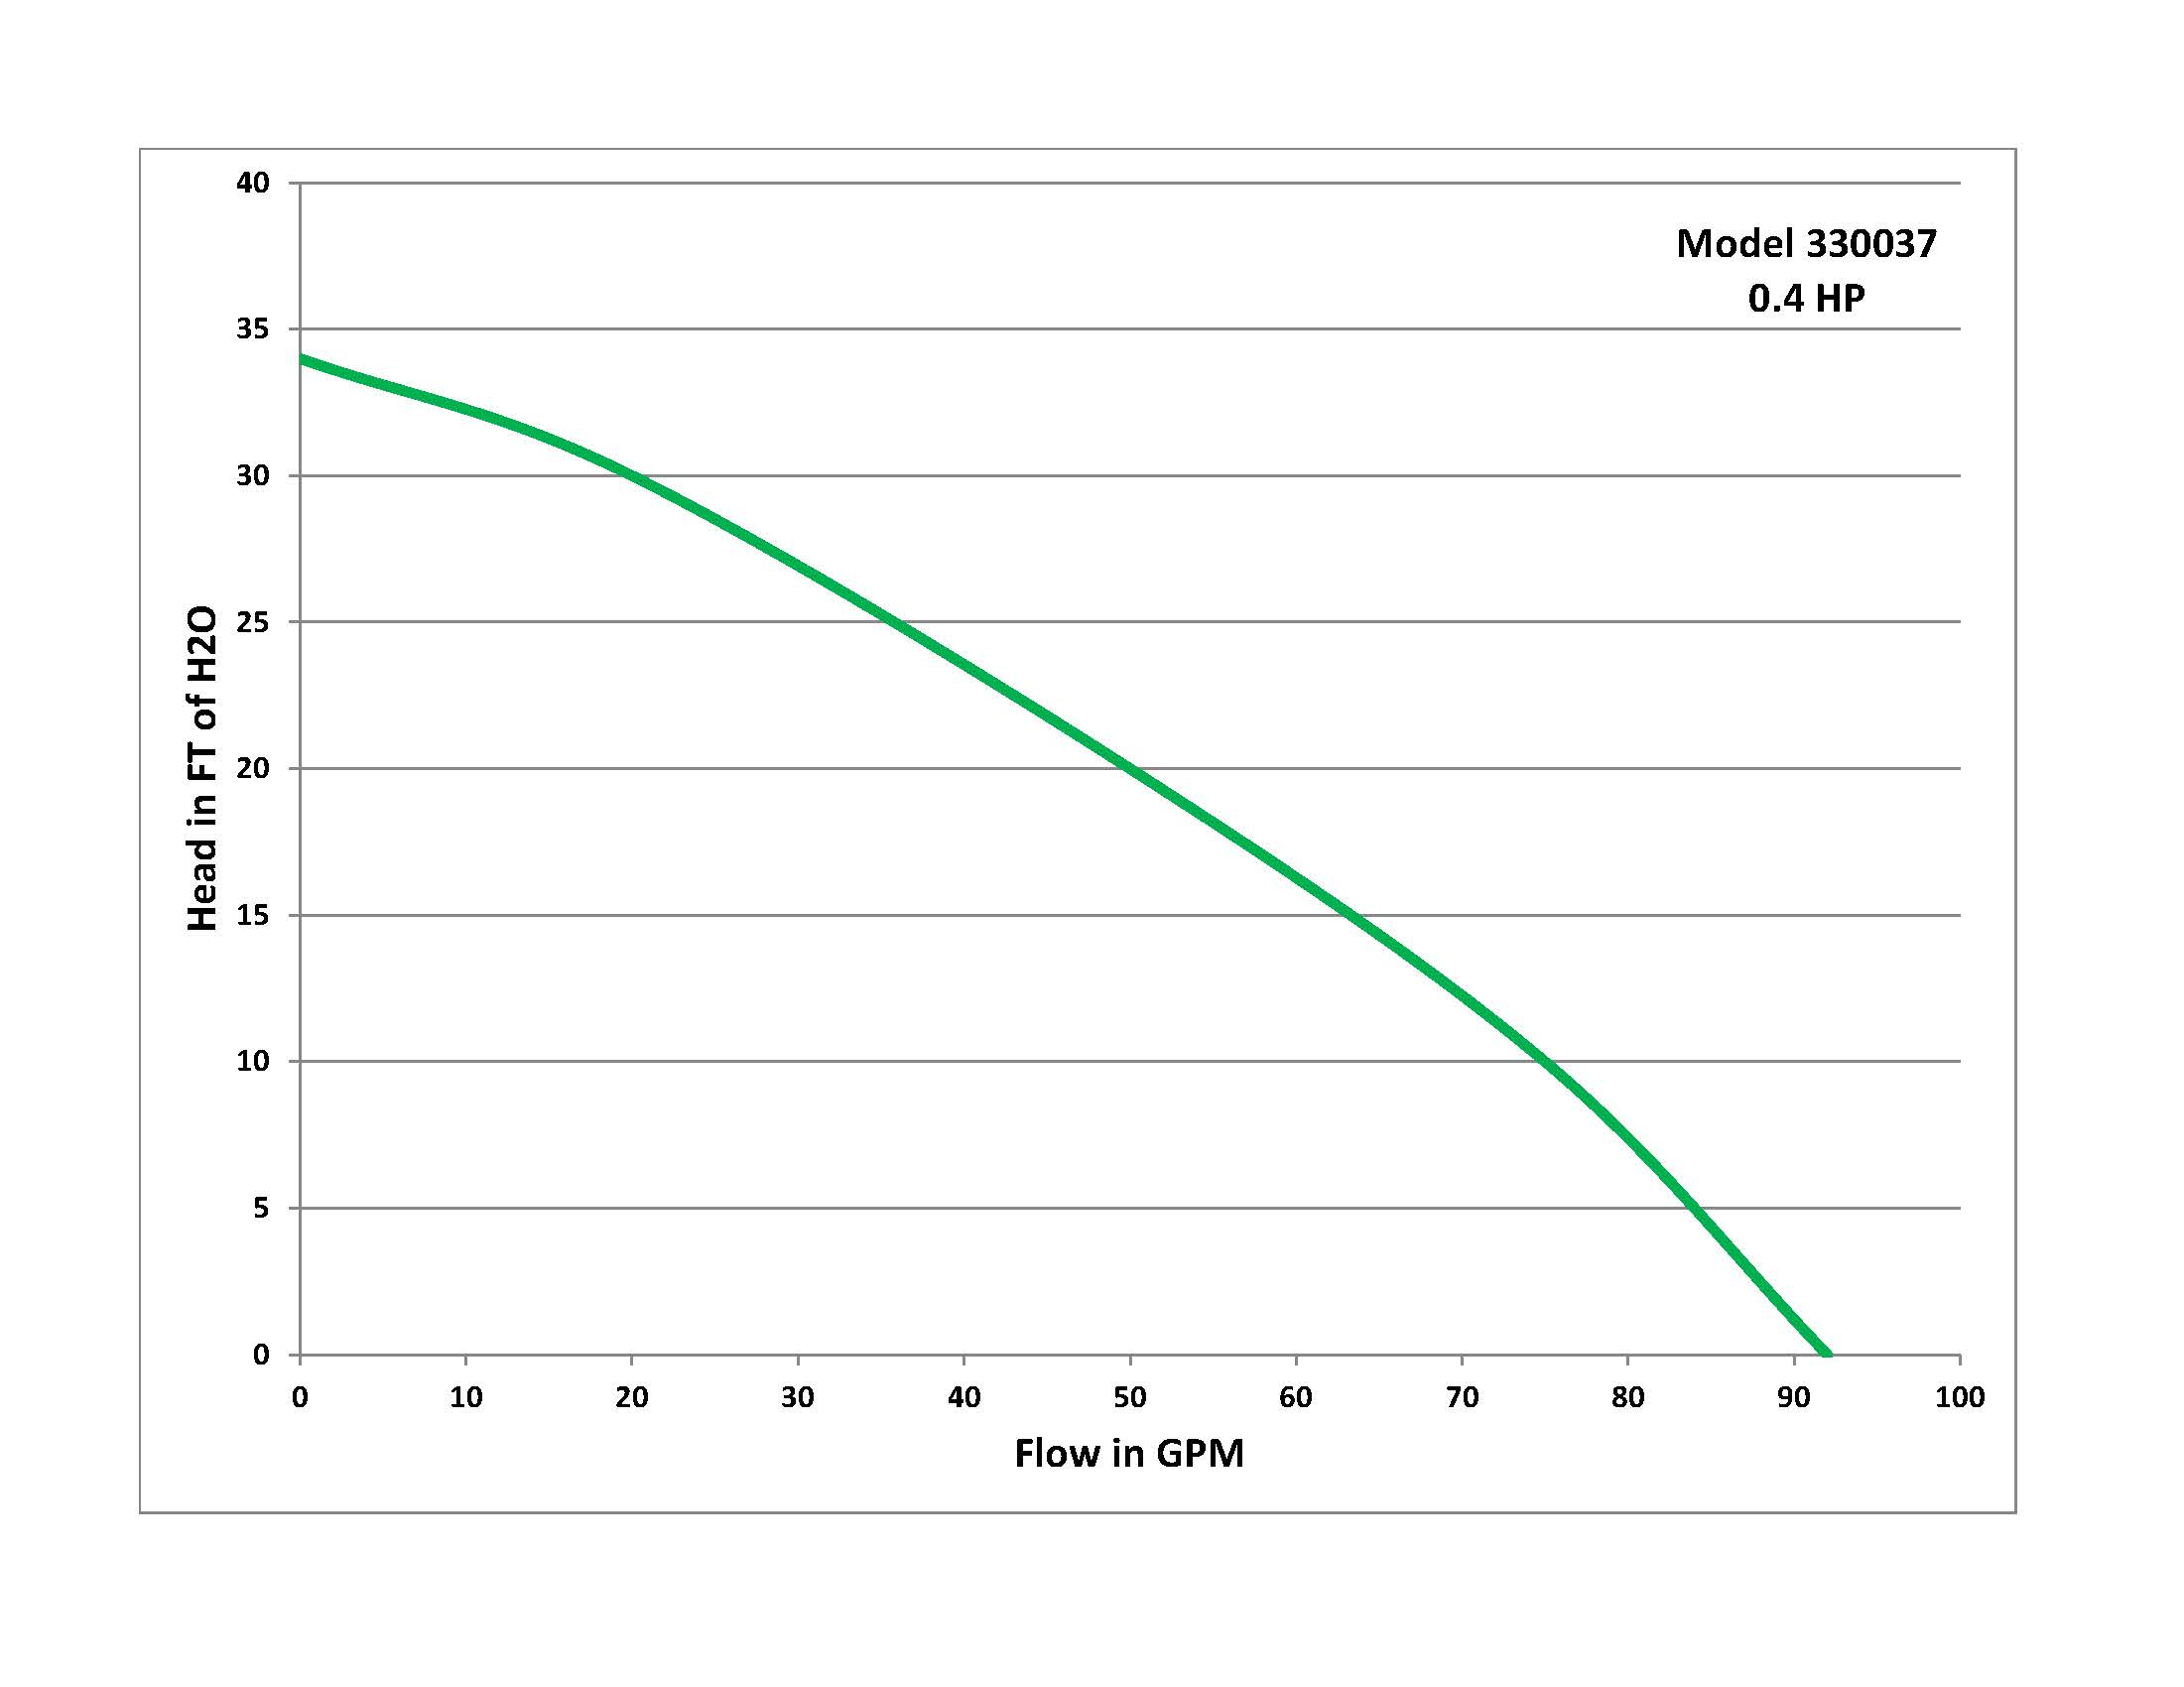 Performance Curve for Model 330037